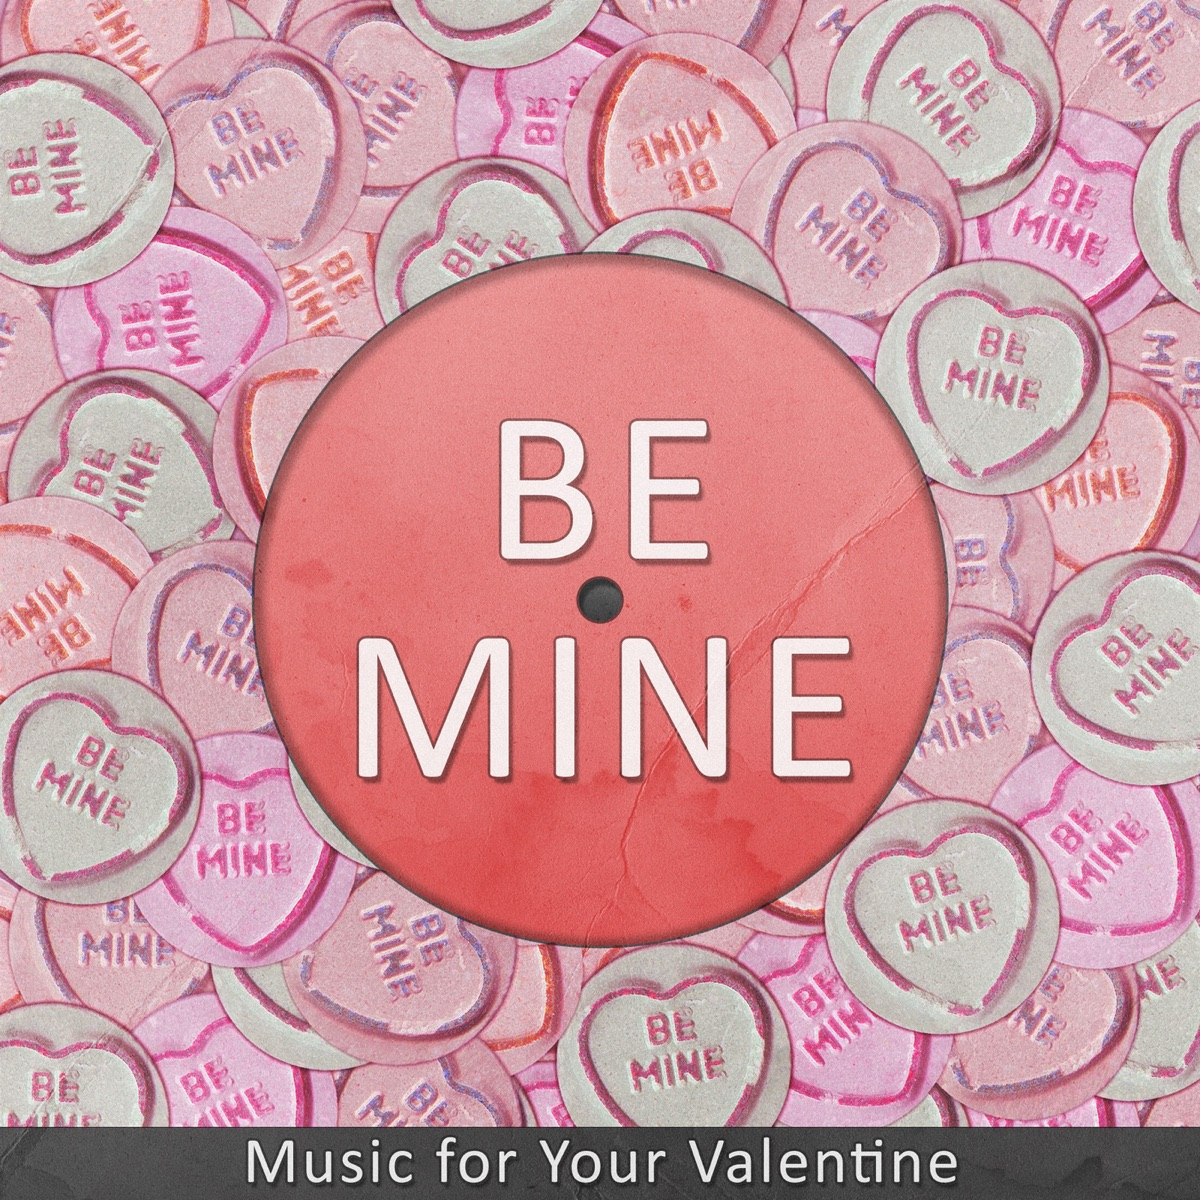 Be Mine - Music for Your Valentine Various Artists CD cover